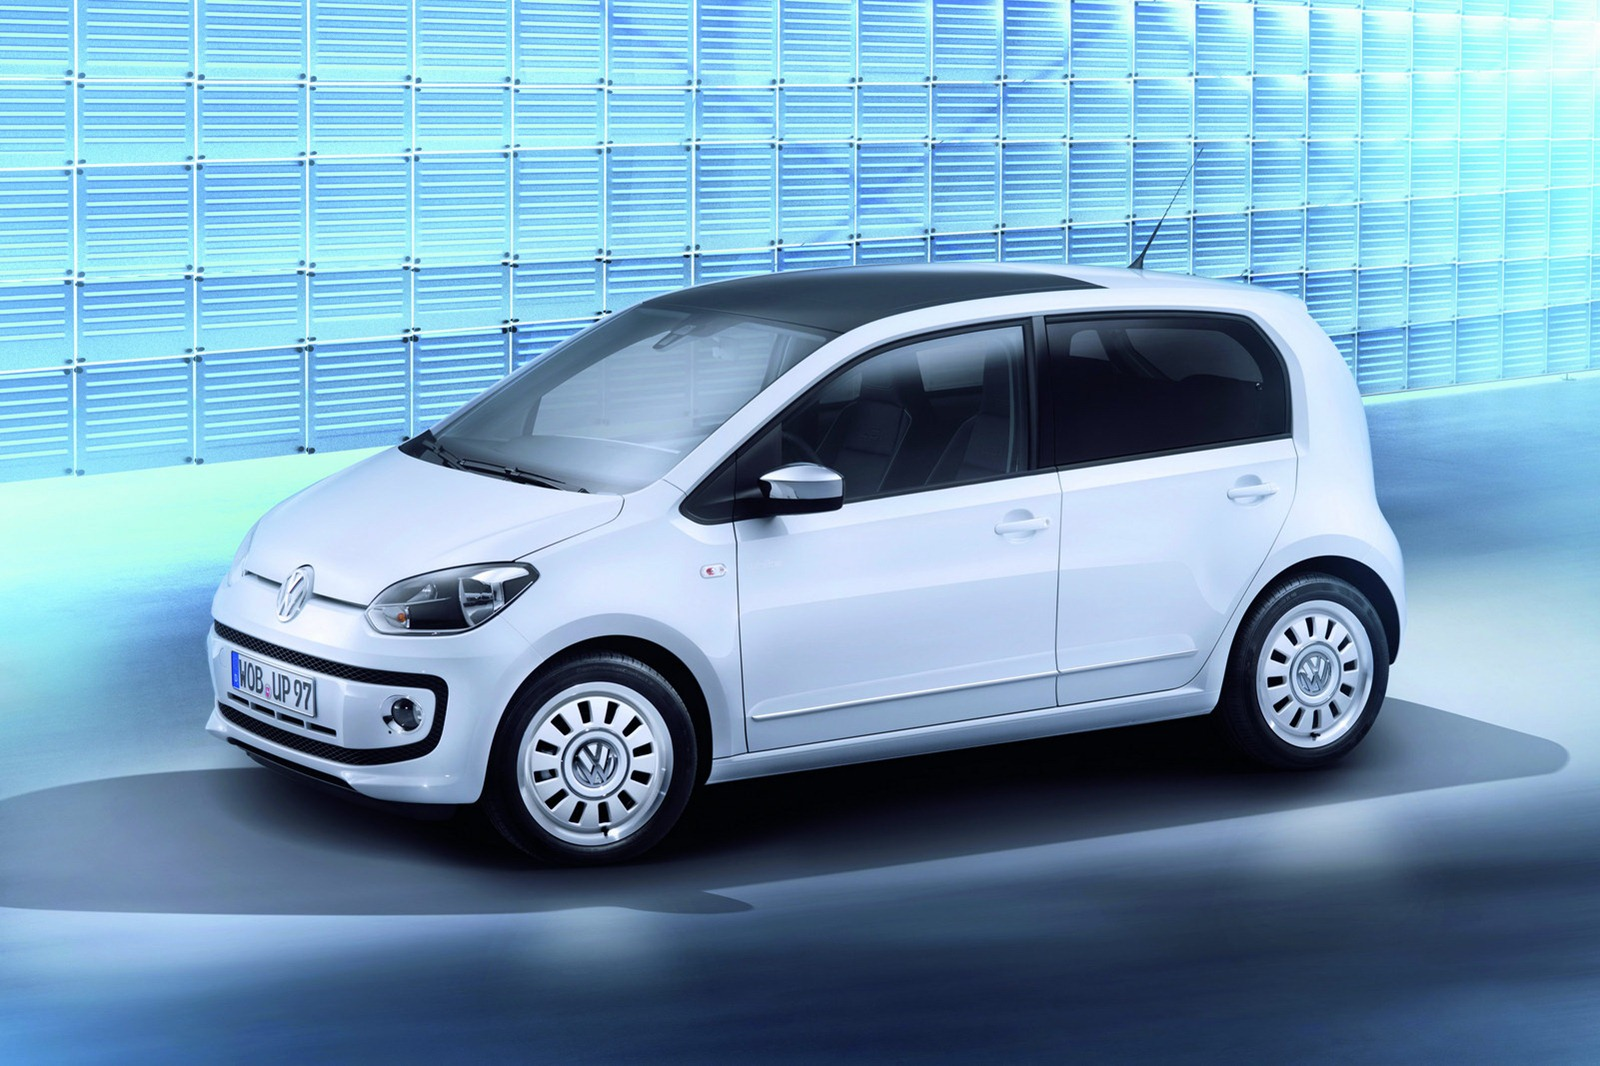 Volkswagen Up! gets XL 1 tech